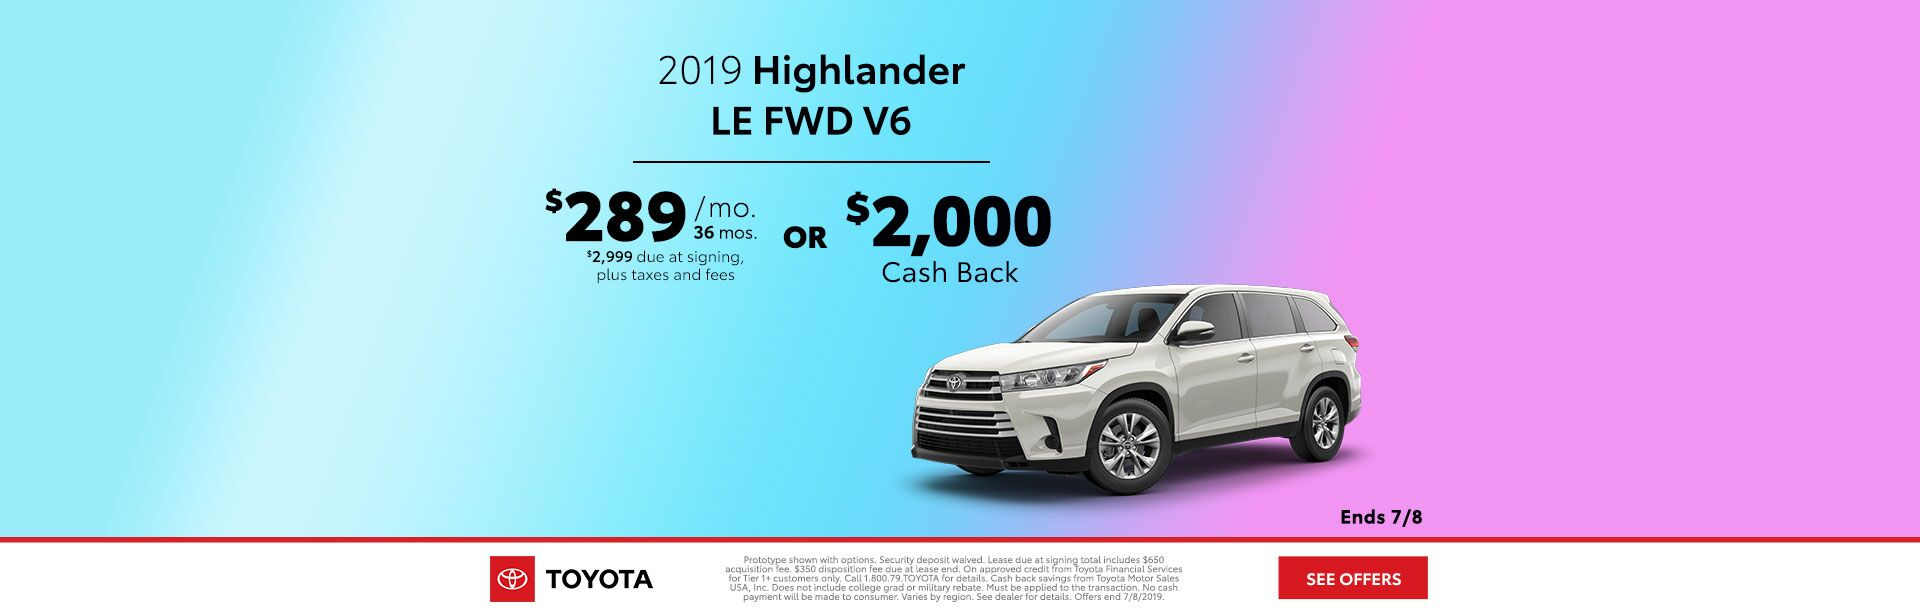 2019 June DEN Highlander